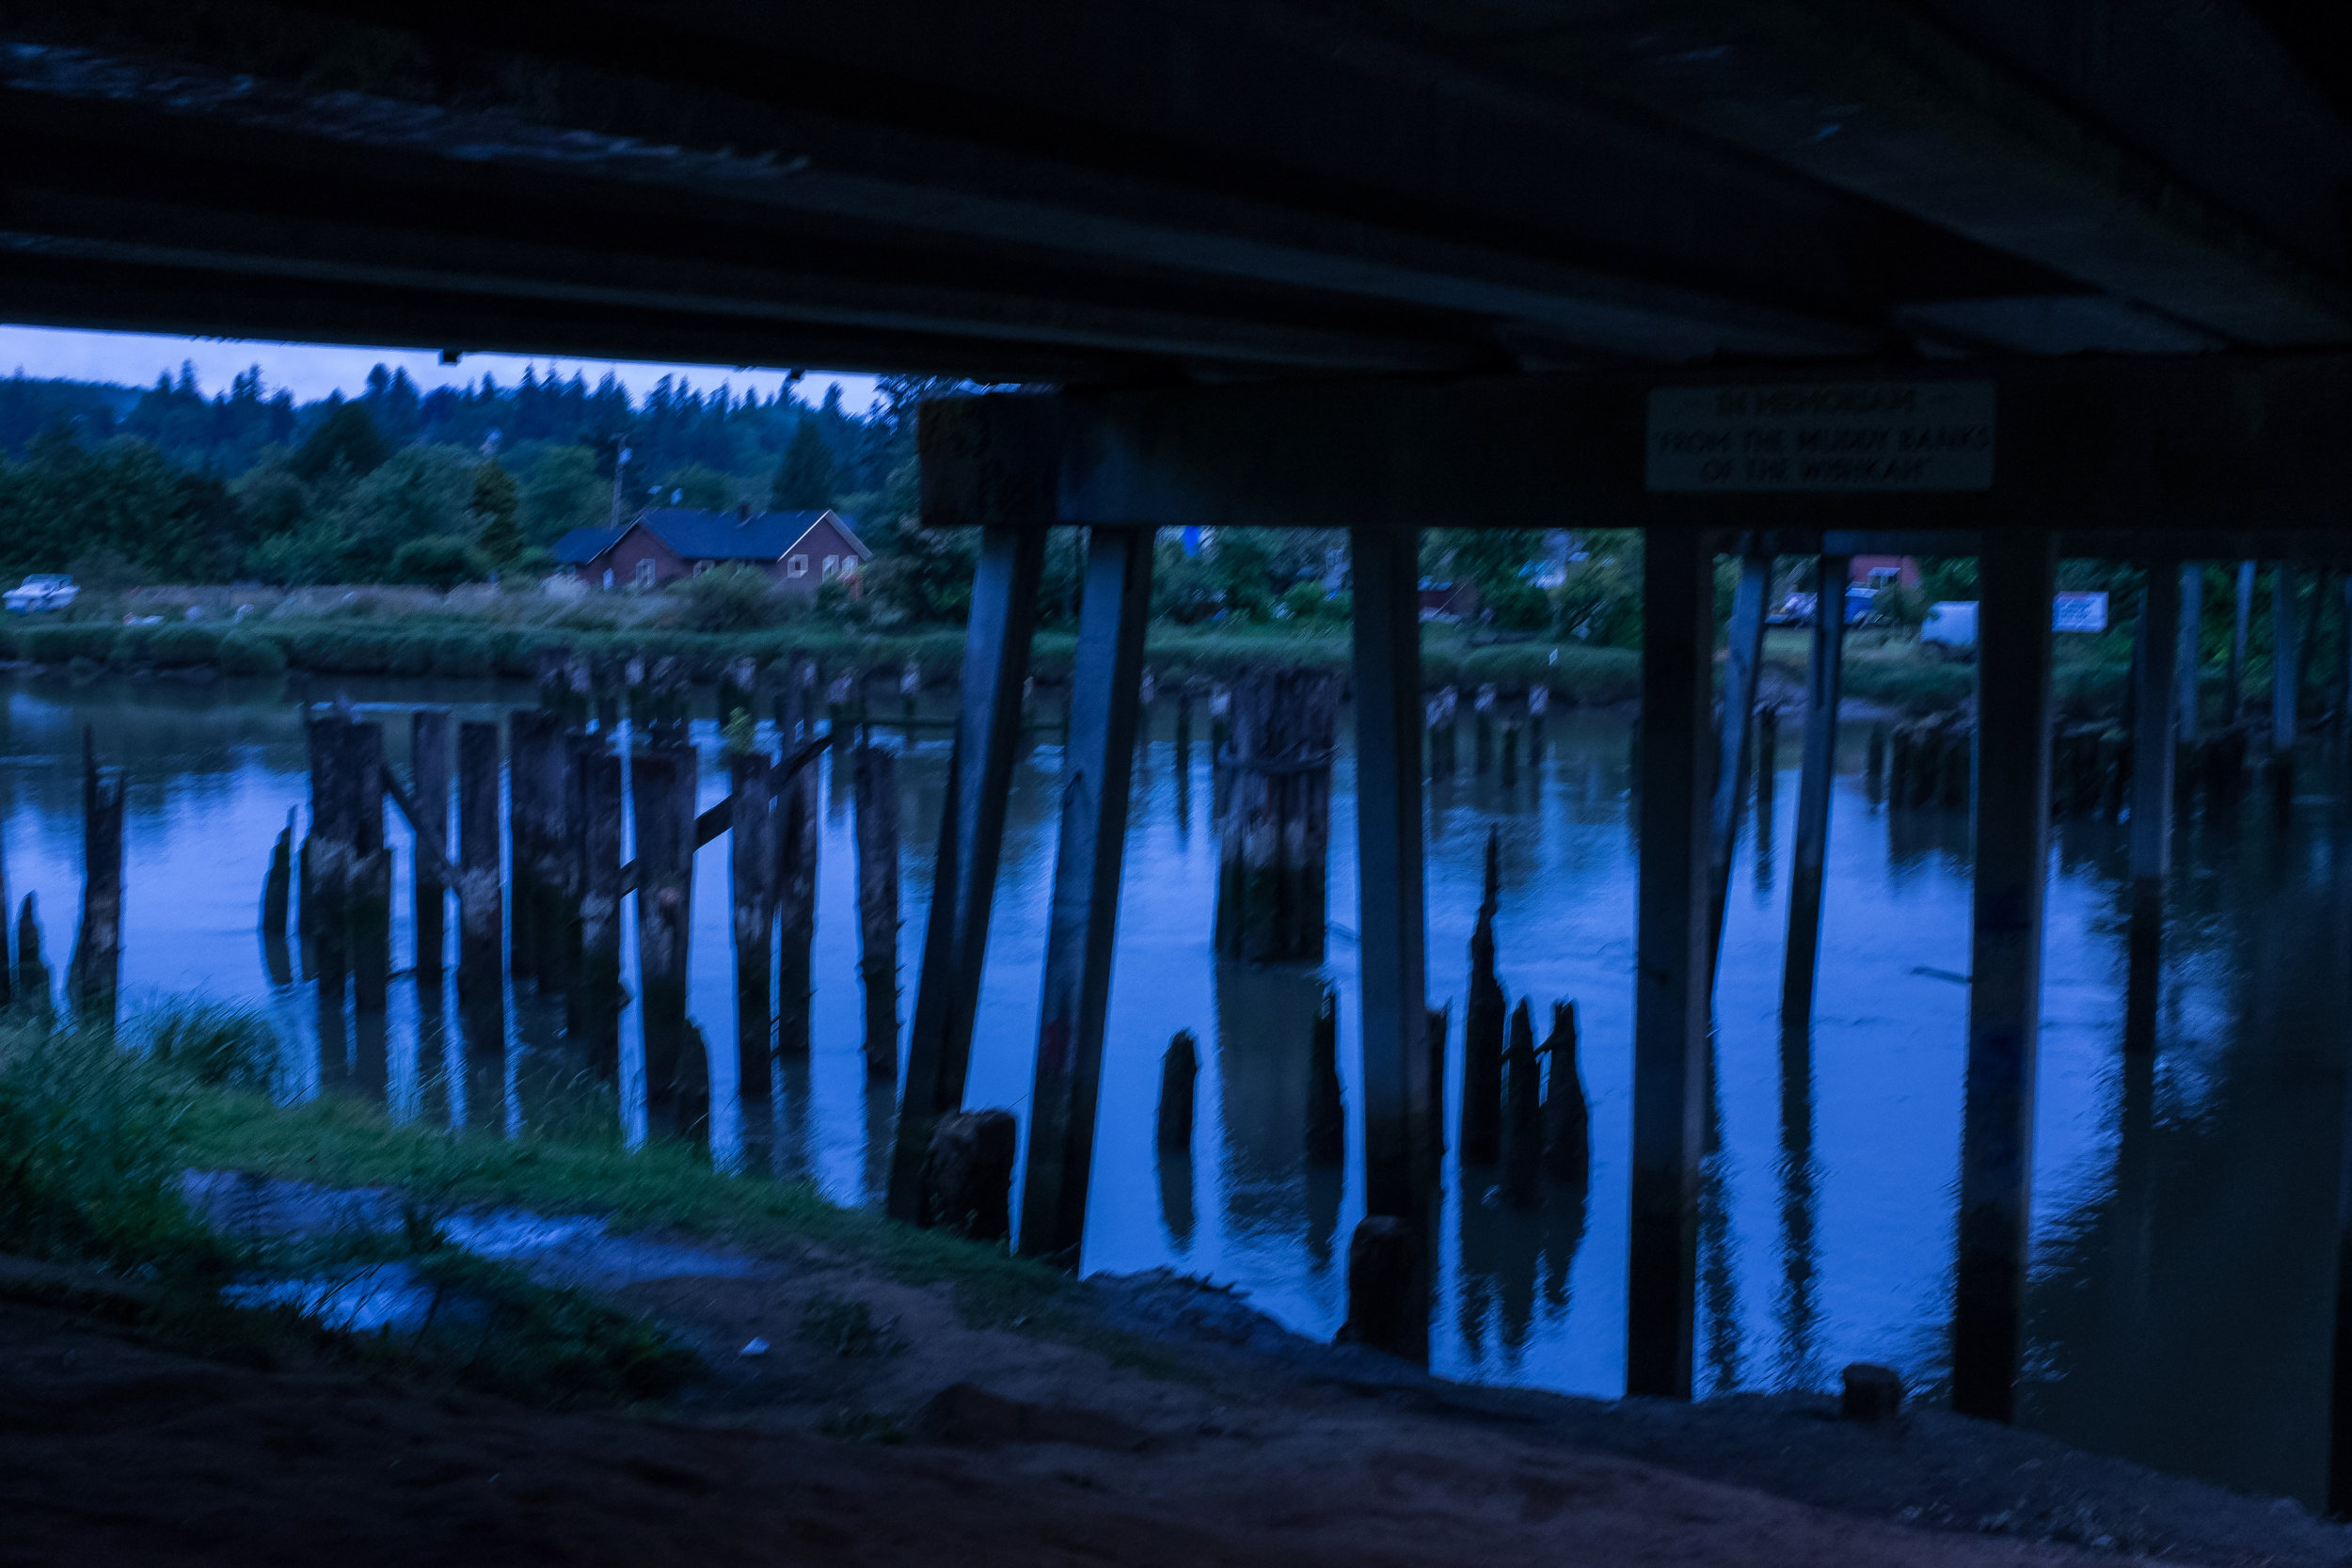 The Young Street bridge in Aberdeen Washington, where Kurt Cobain used to hide and sleep and write music as a teenager.